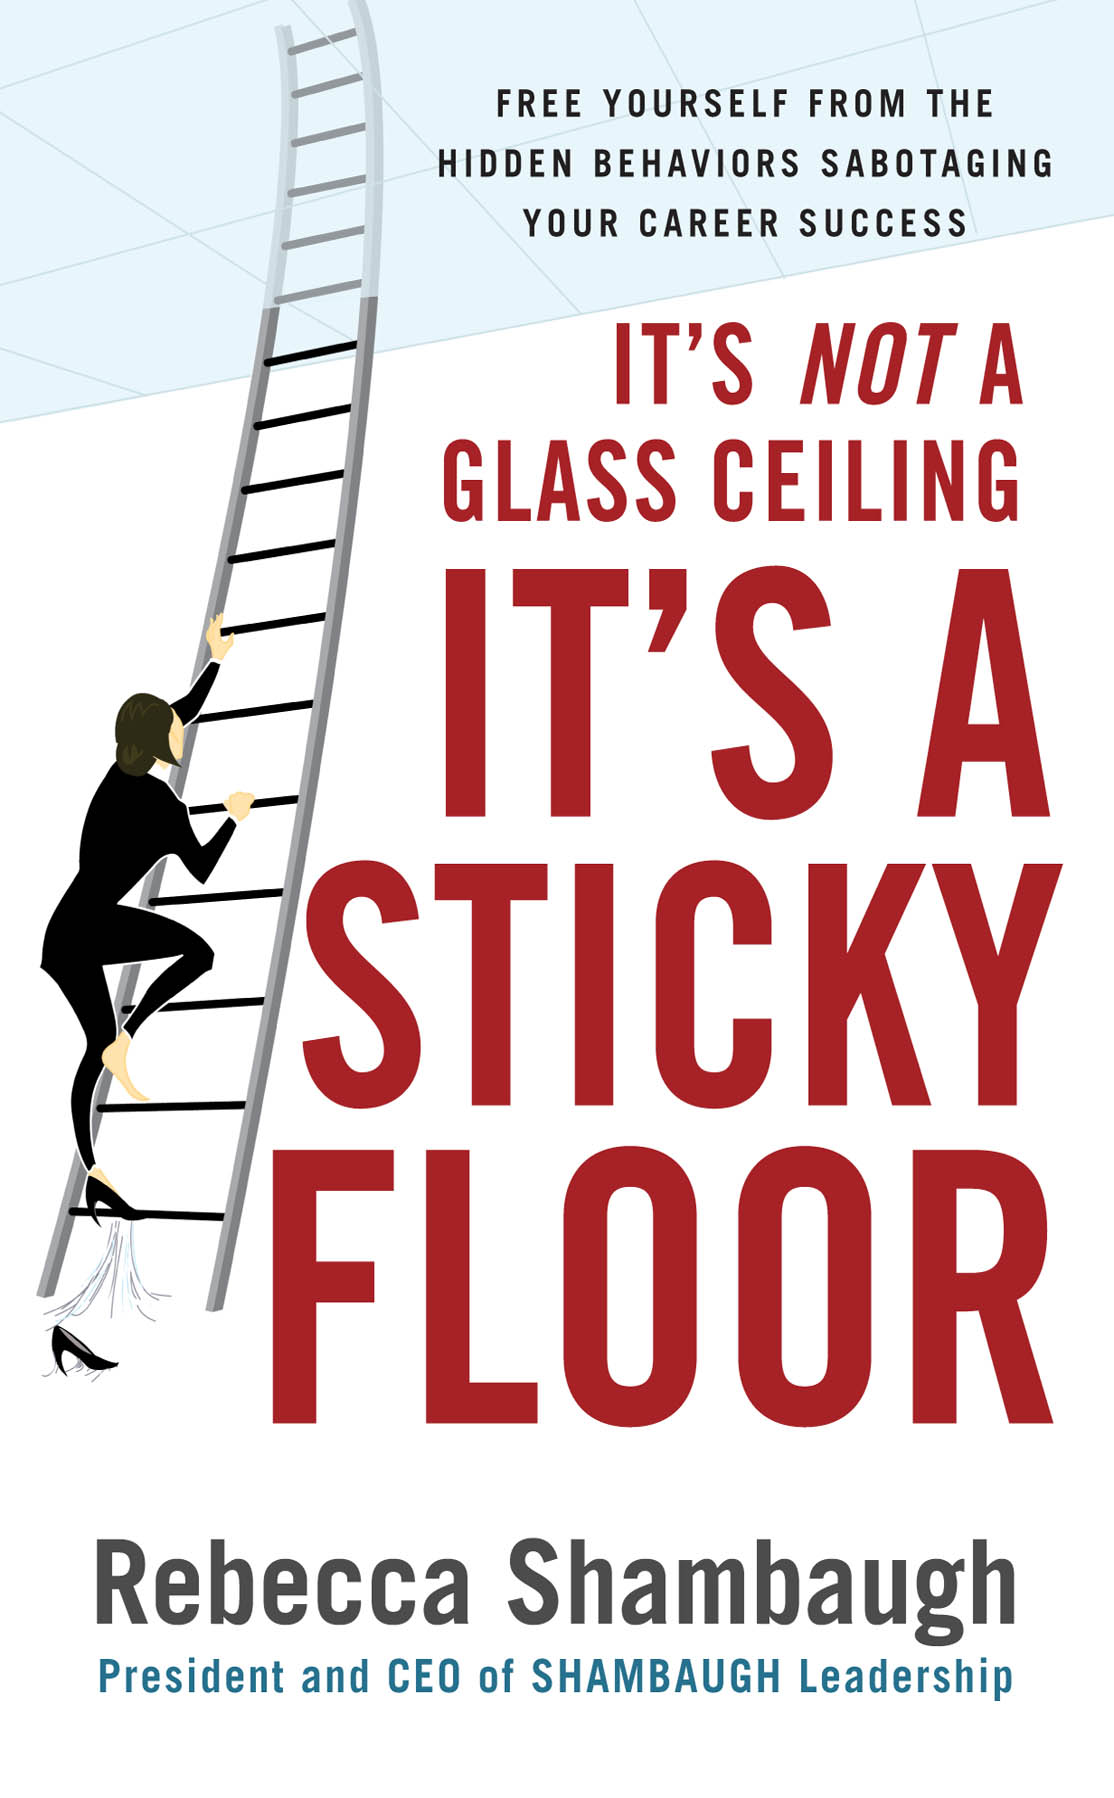 Download Ebook It's Not a Glass Ceiling, It's a Sticky Floor: Free Yourself From the Hidden Behaviors Sabotaging Your Career Success by Rebecca Shambaugh Pdf